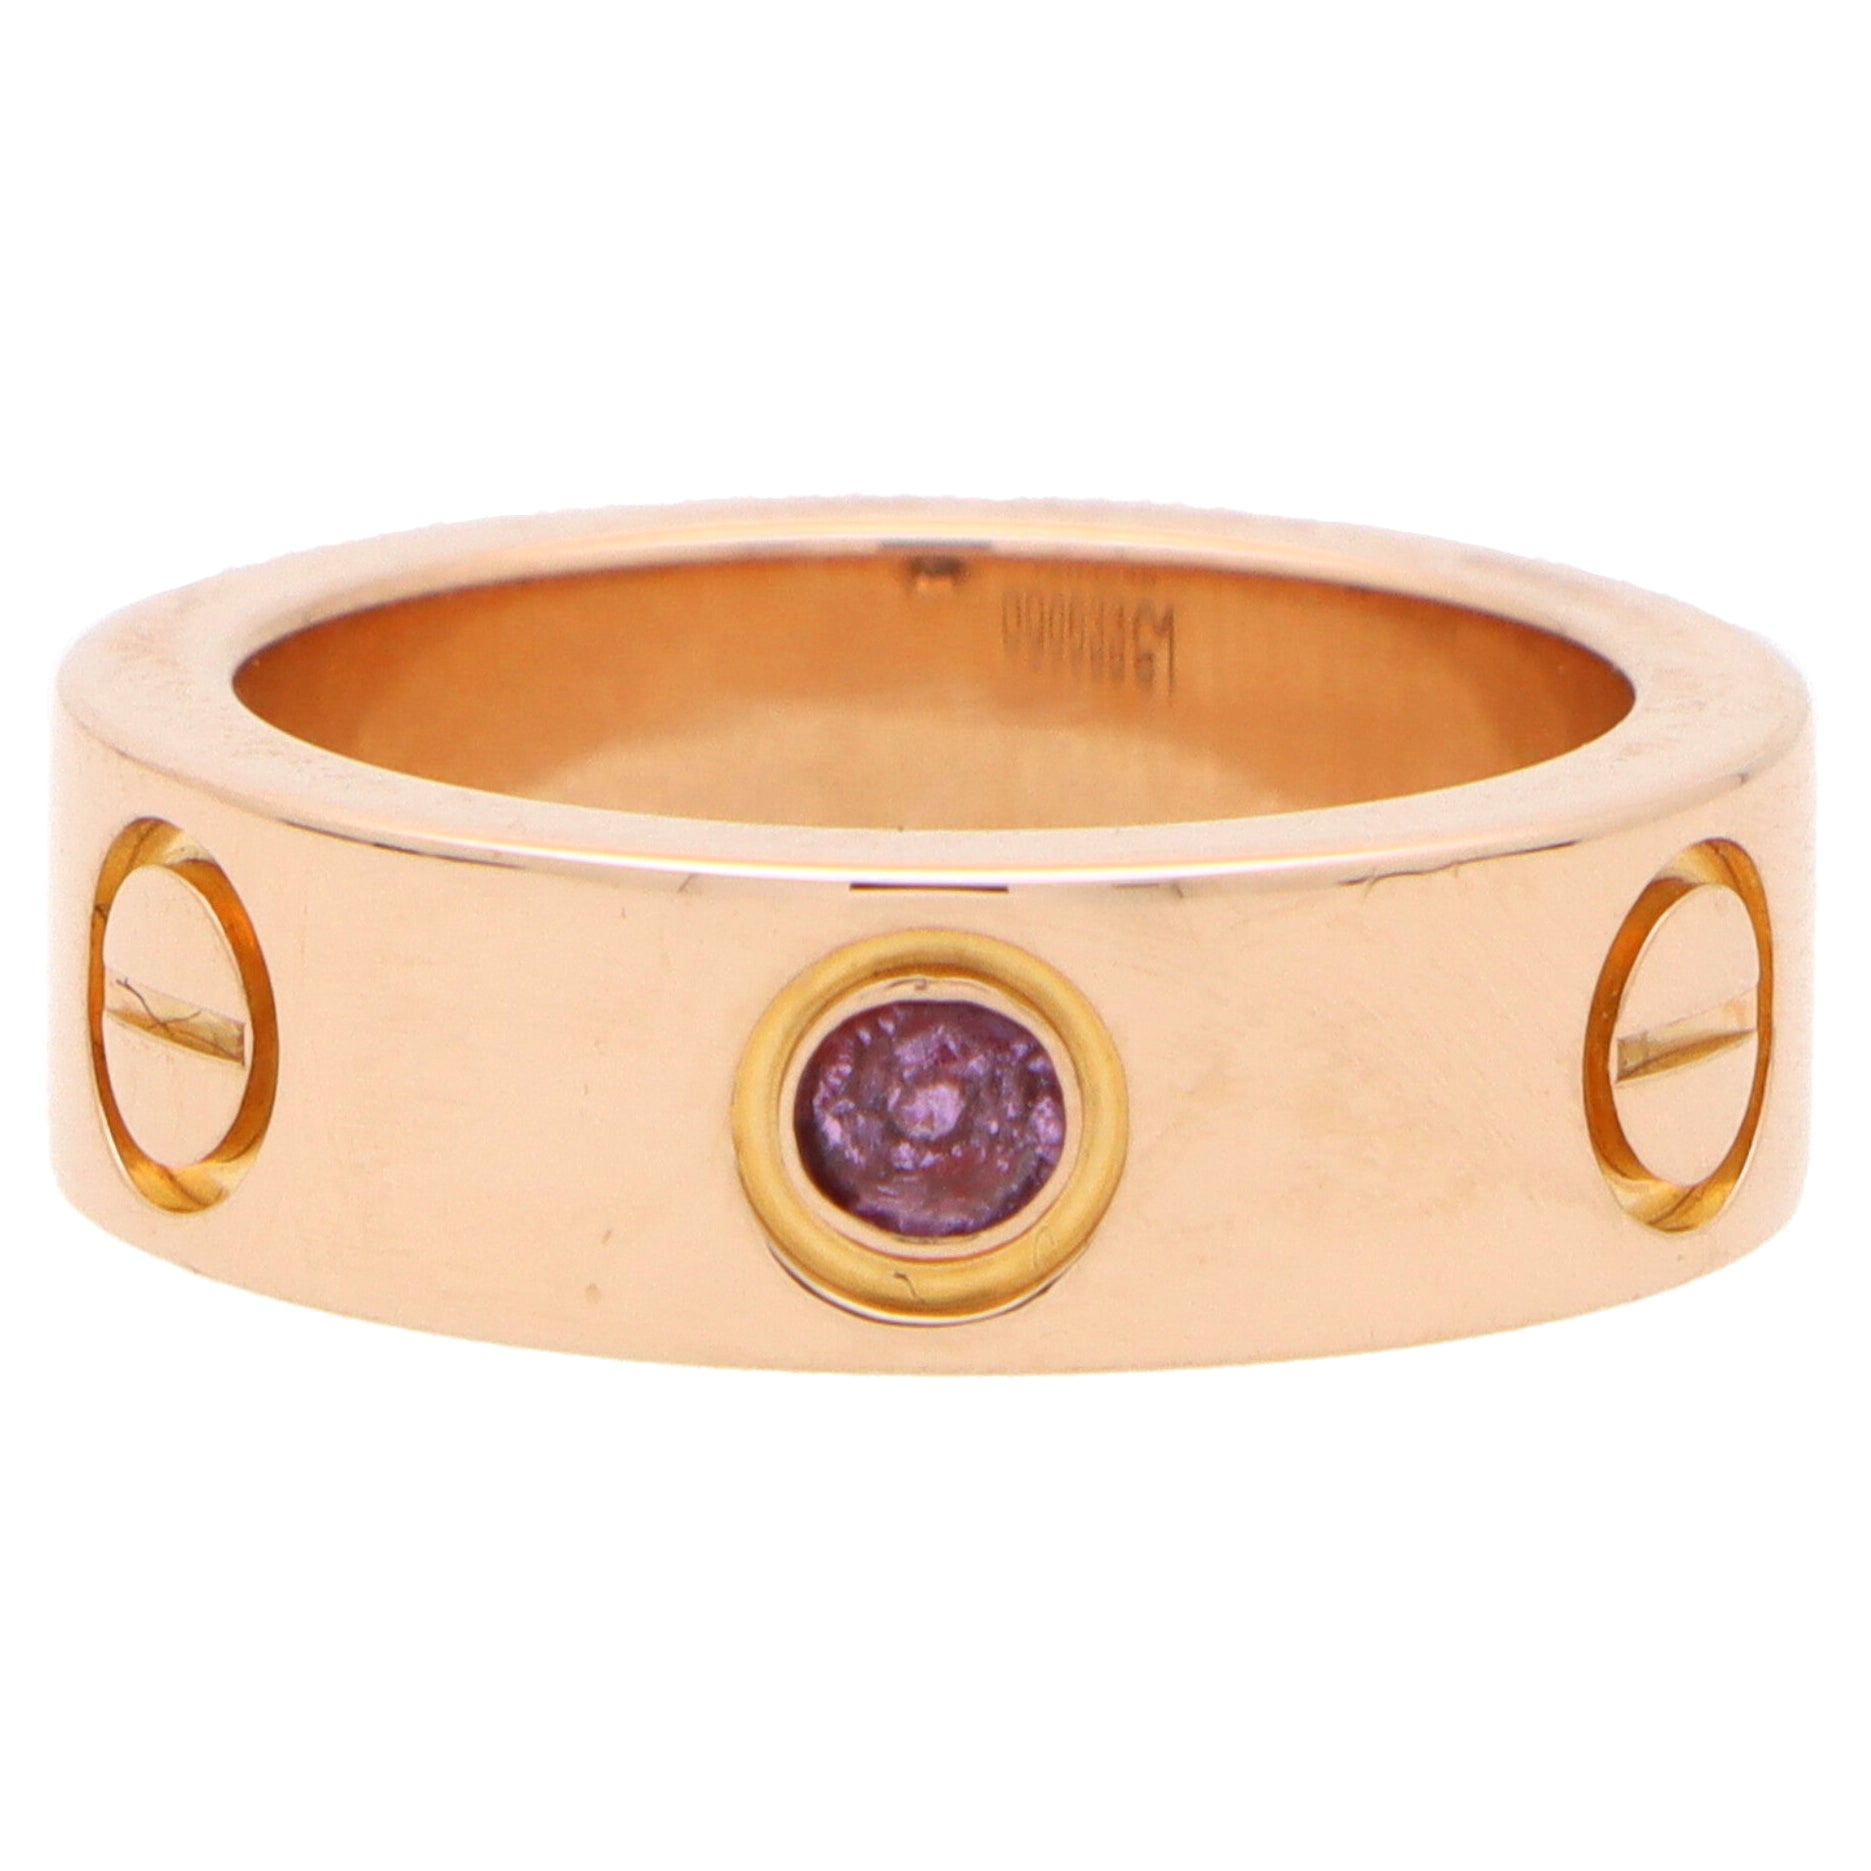 Vintage Cartier Pink Sapphire Love Ring in 18k Rose Gold